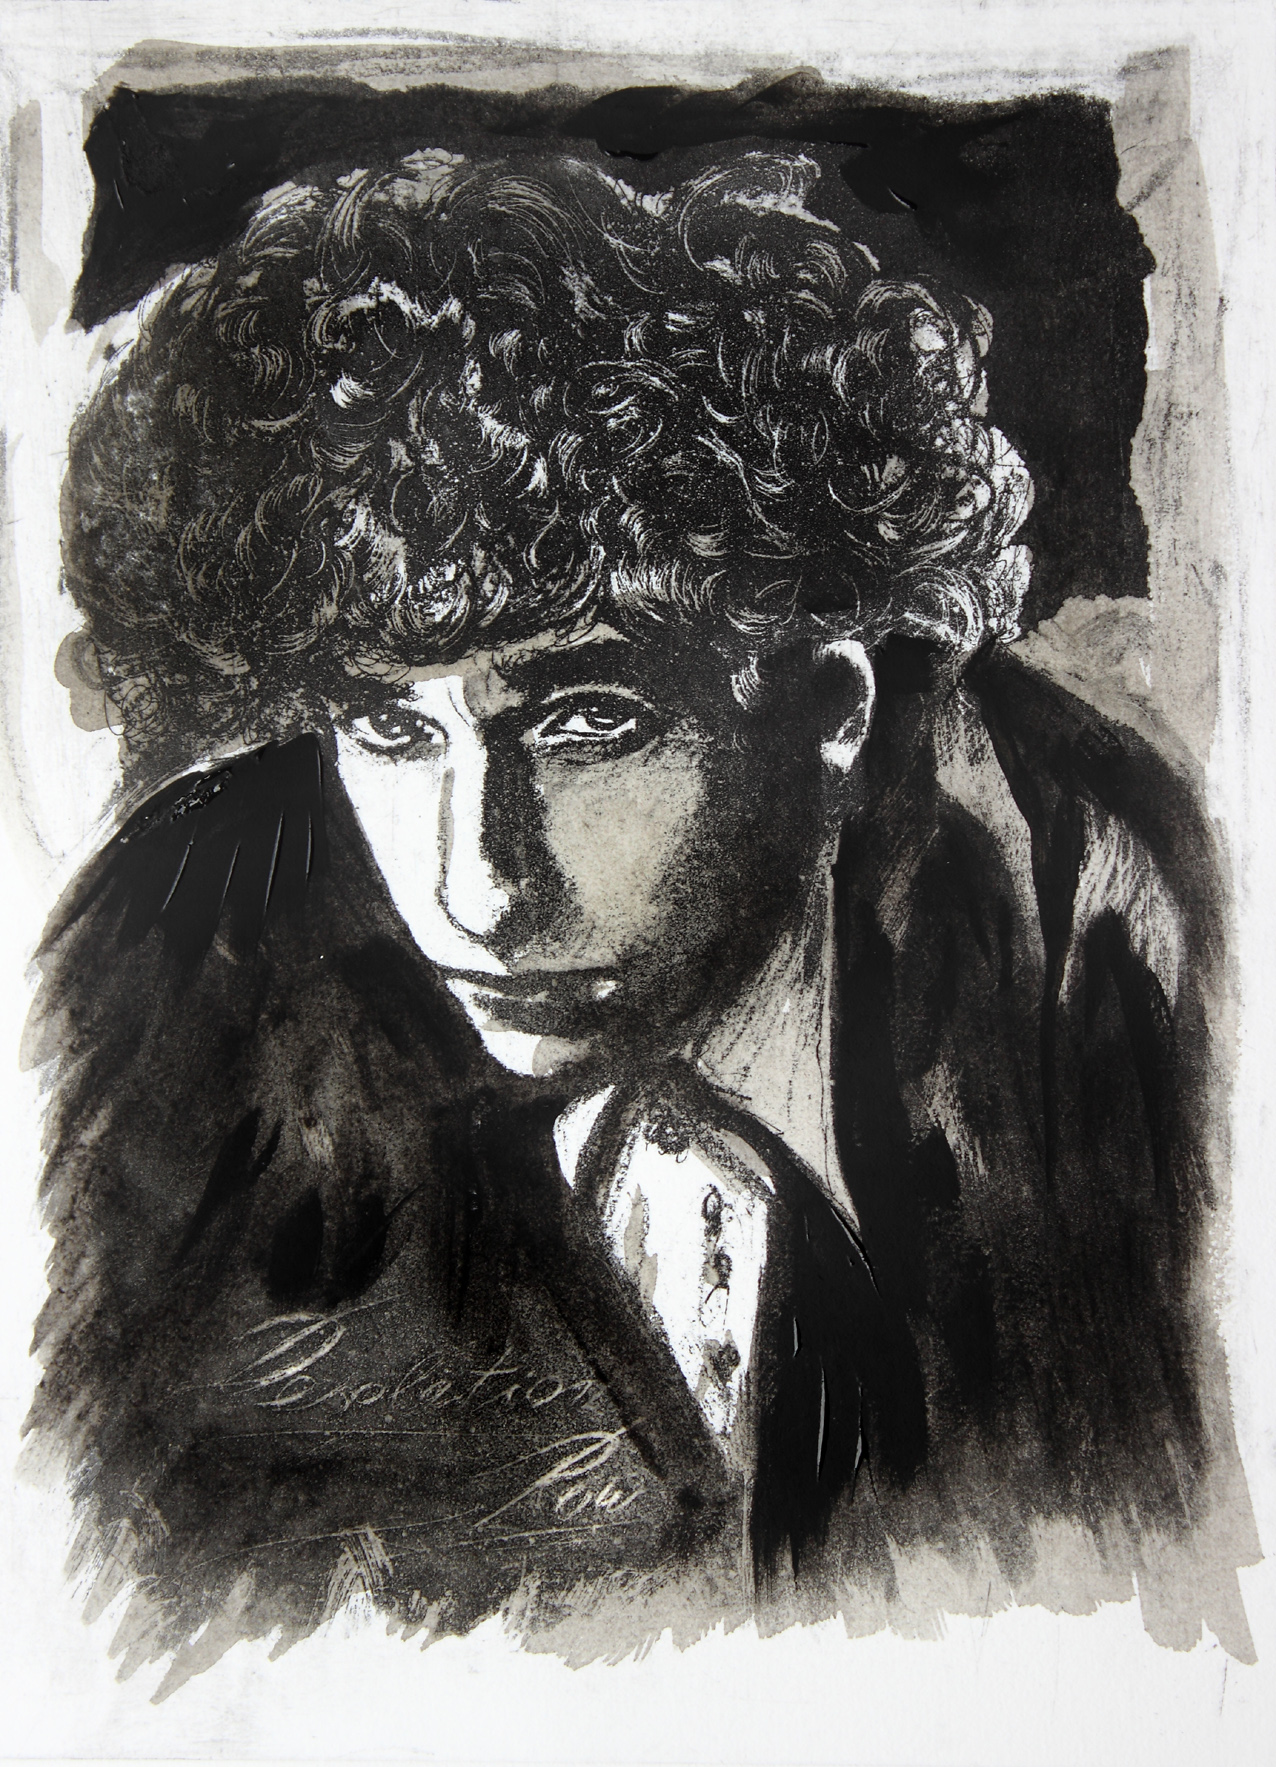 bob-dylan-desolation-row-radierung-kl